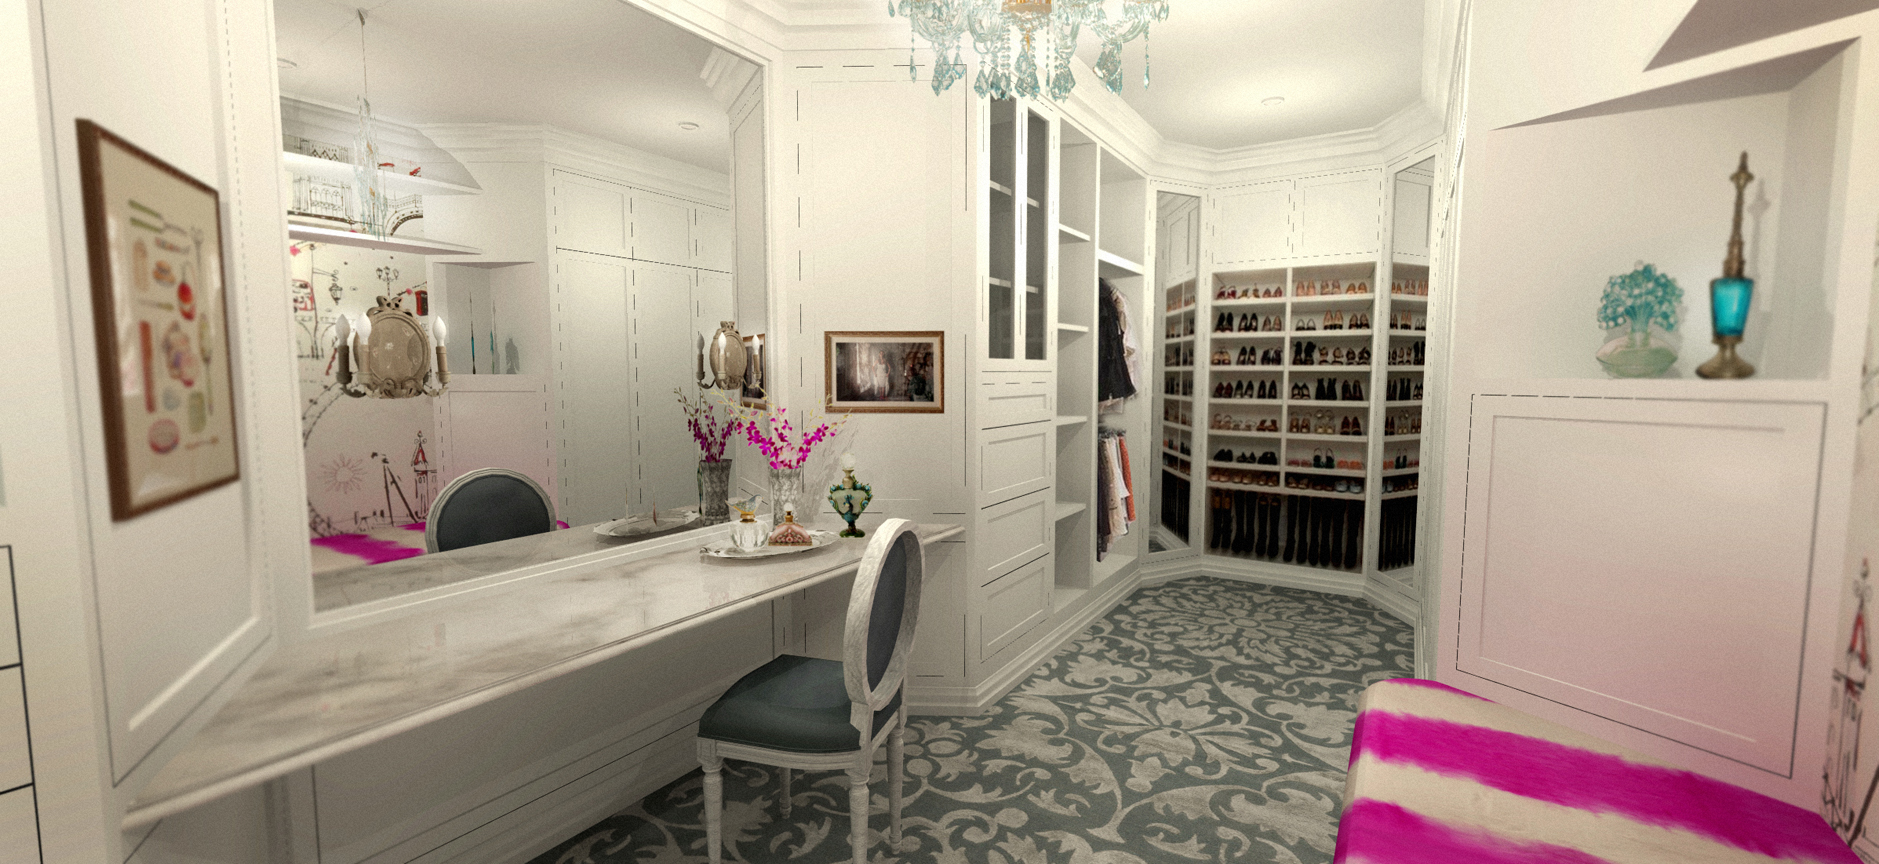 MASTER BEDROOM CLOSET - RENDERING